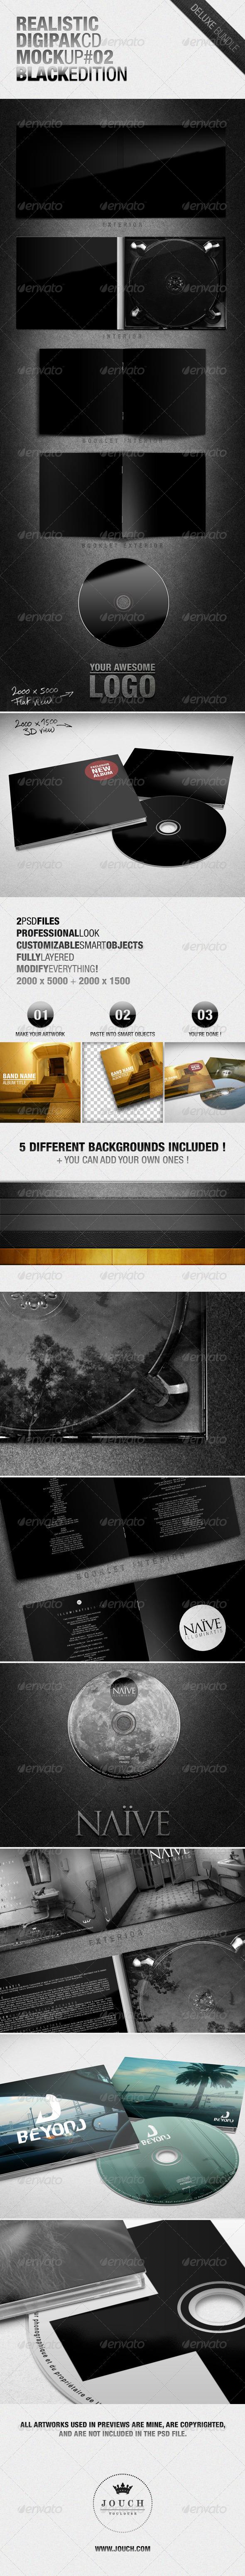 GraphicRiver Realistic Digipak CD Mockup #02 Black Edition 4413201